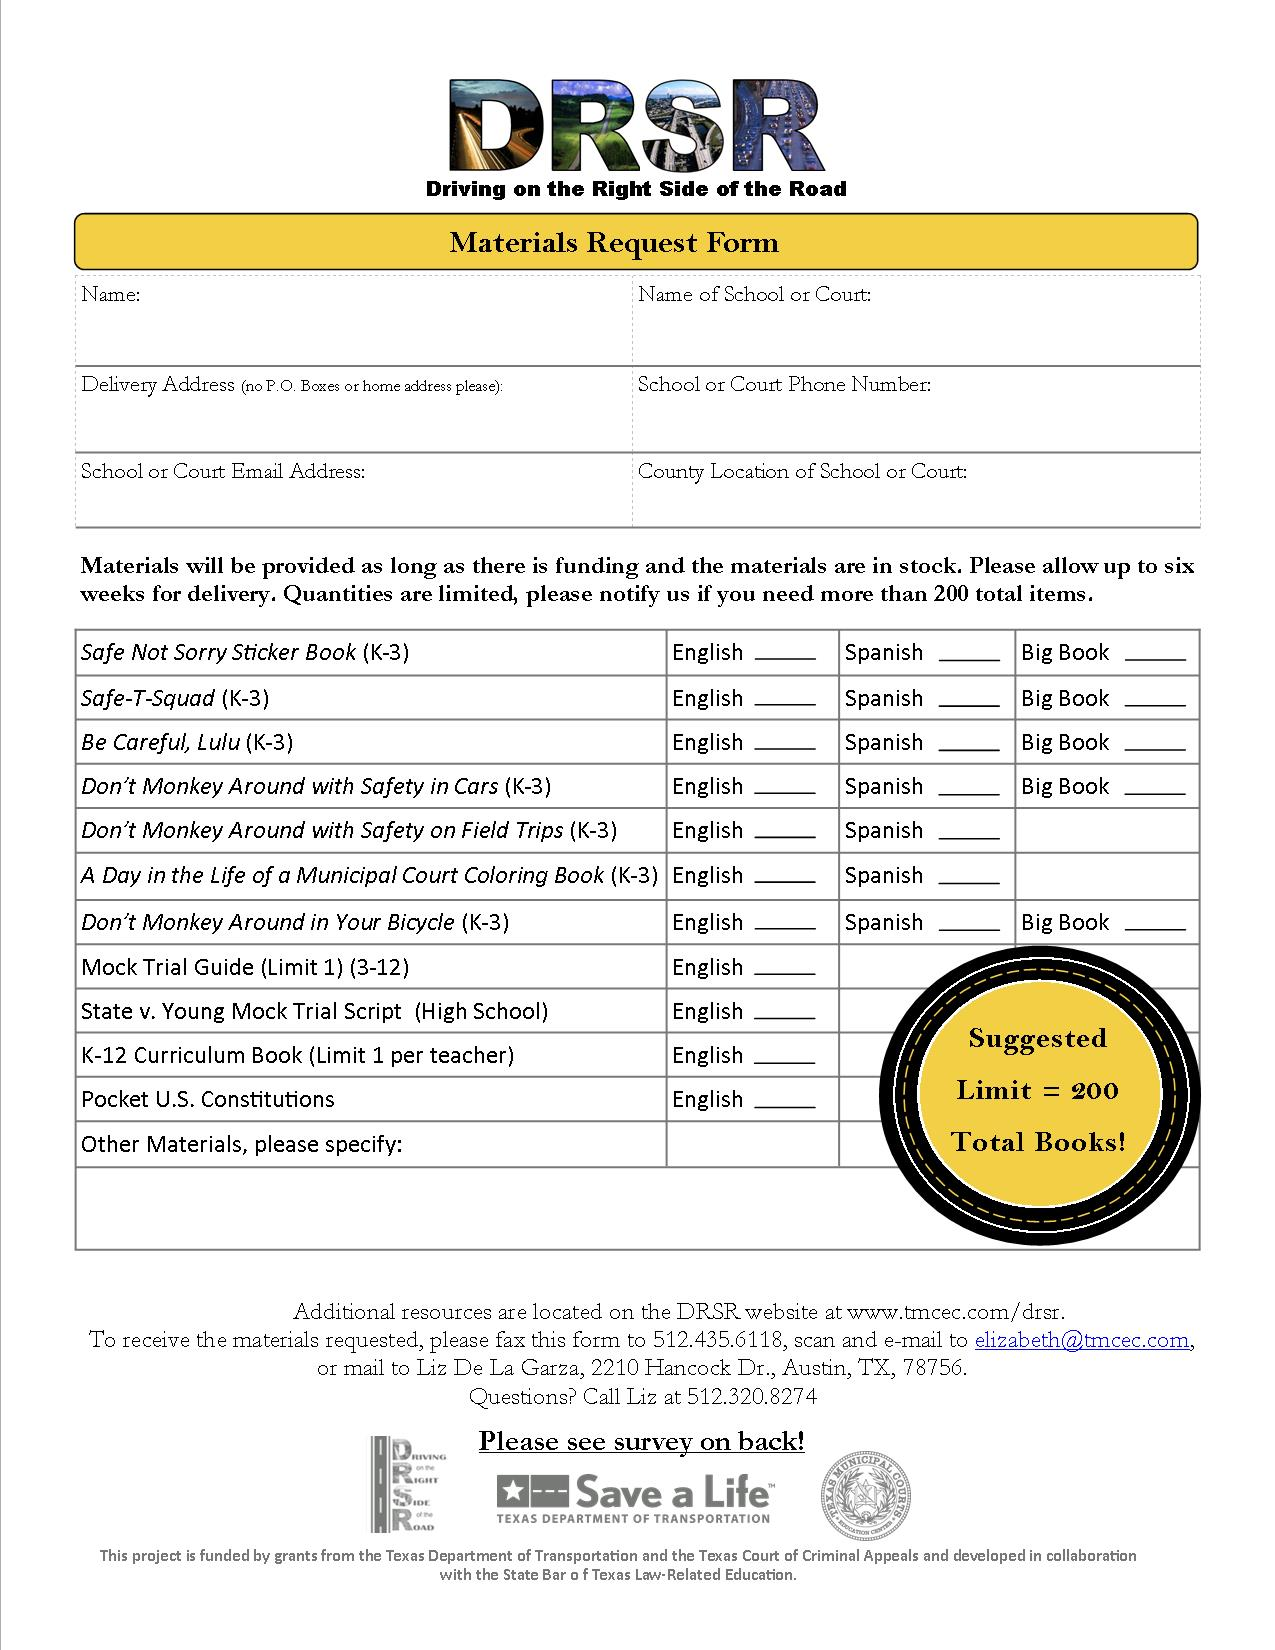 TMCEC Materials Request Form for Community Outreach – Request Form